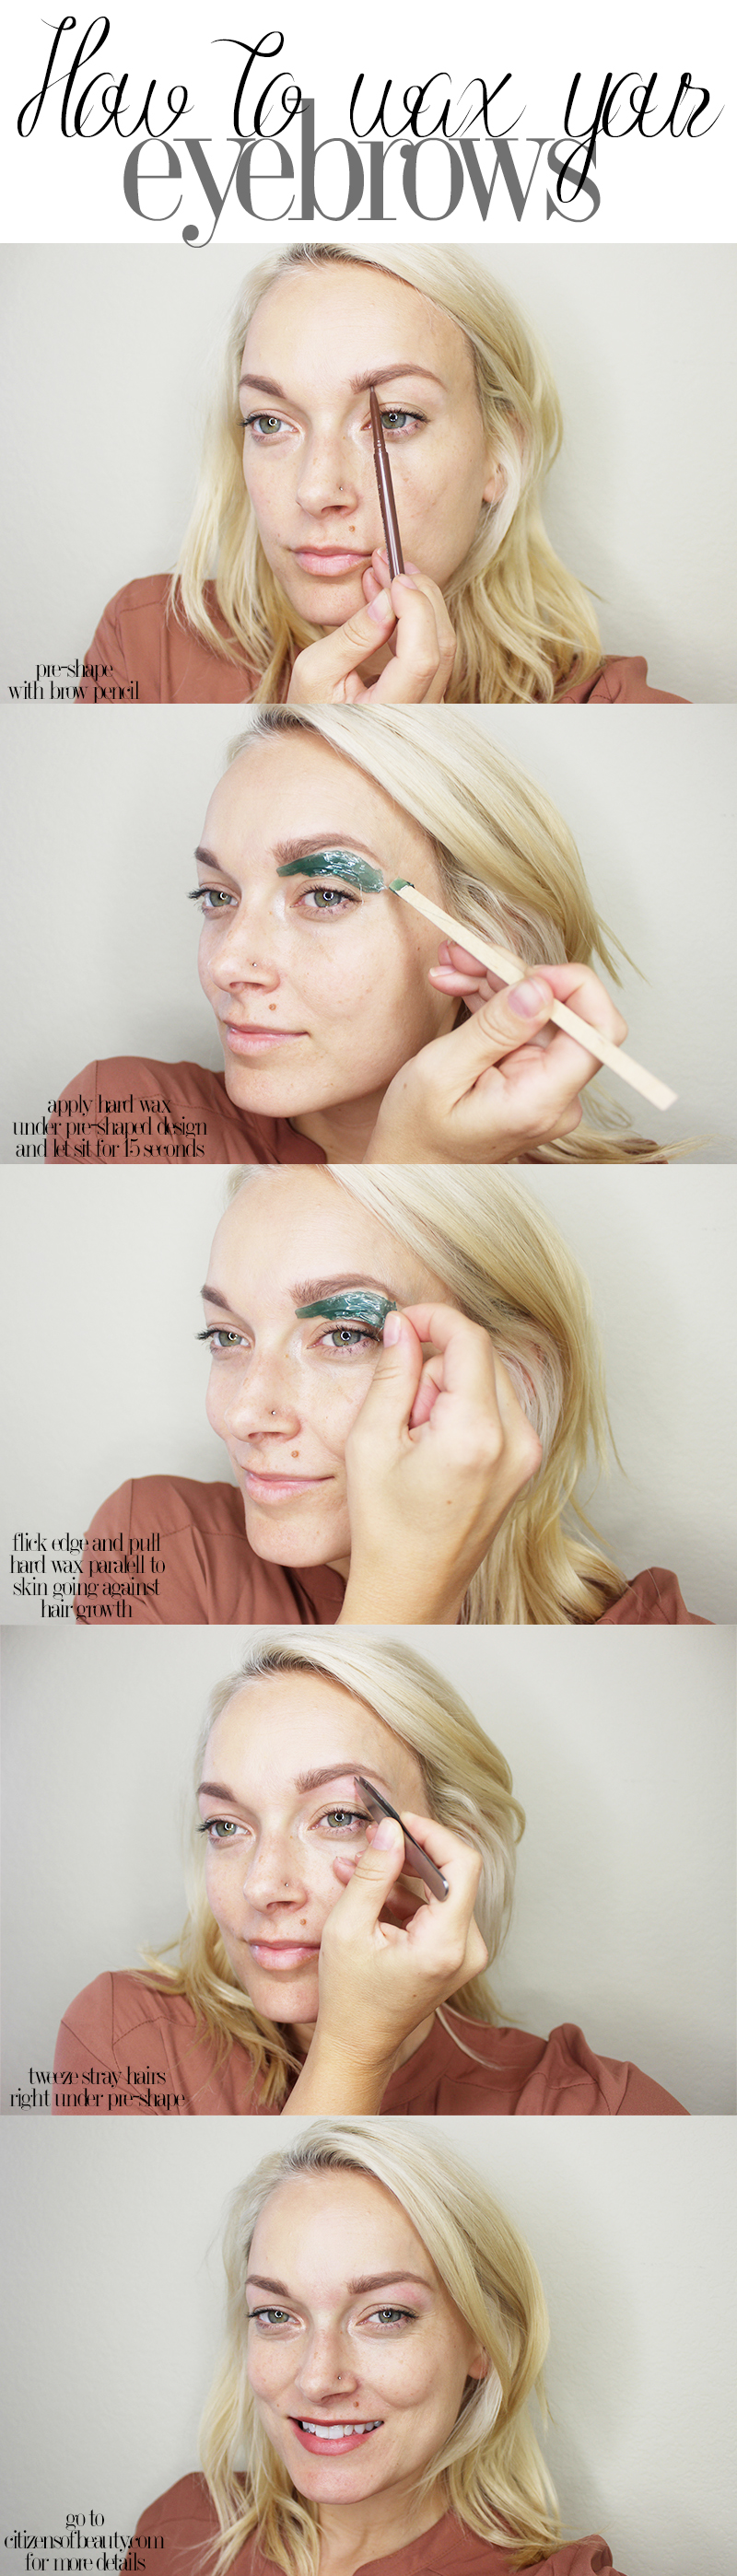 How to Wax Your Eyebrows at Home - Citizens of Beauty